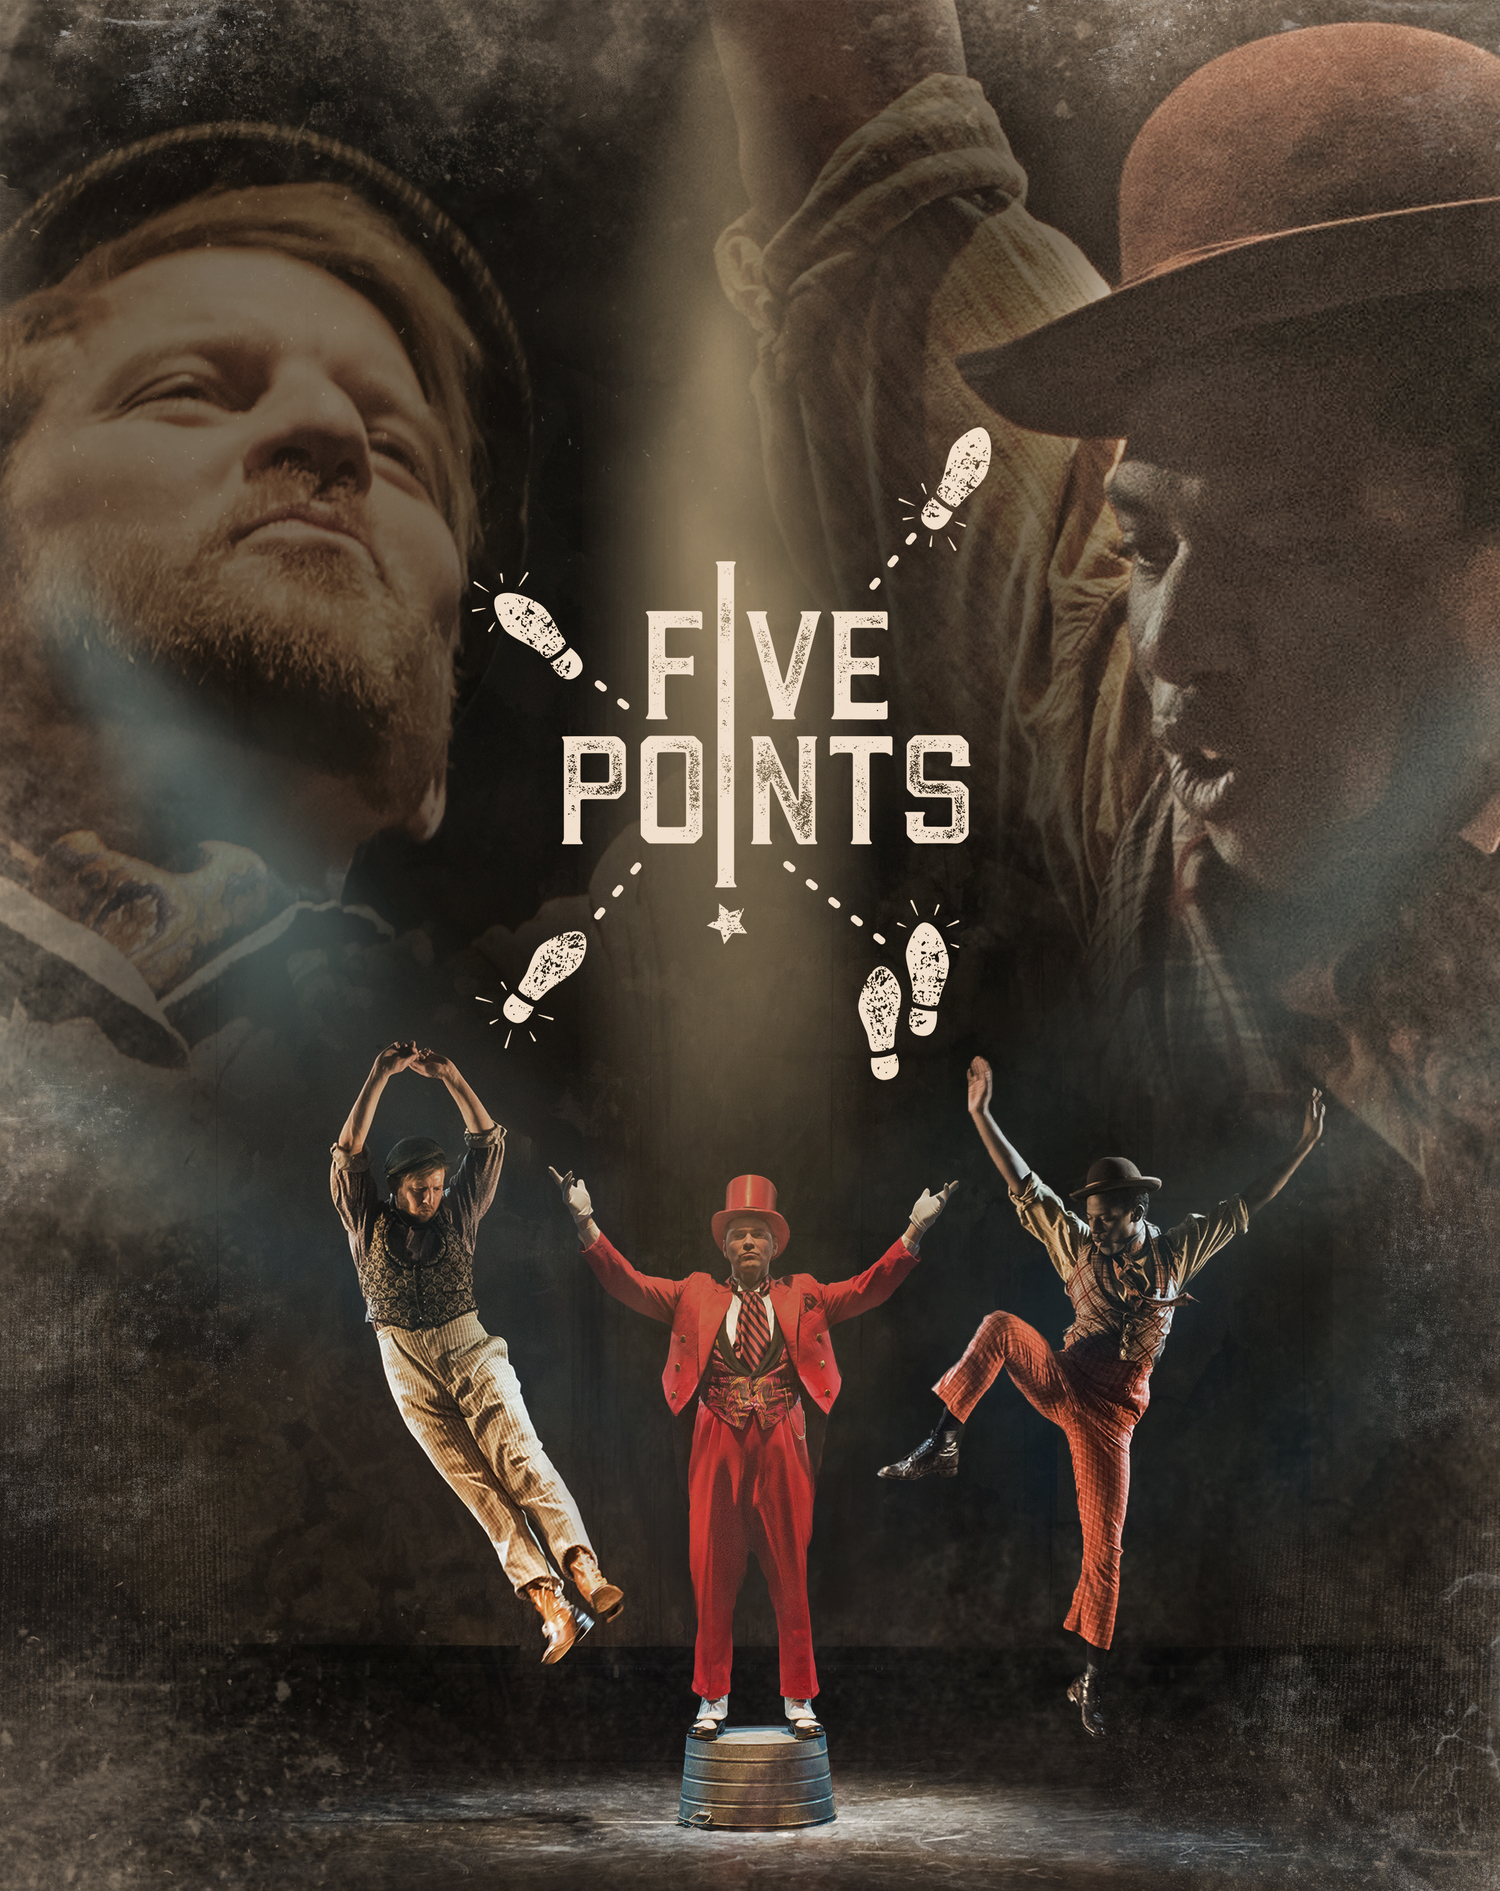 BWW Feature: Upcoming World Premiere of FIVE POINTS at Theater Latte Da